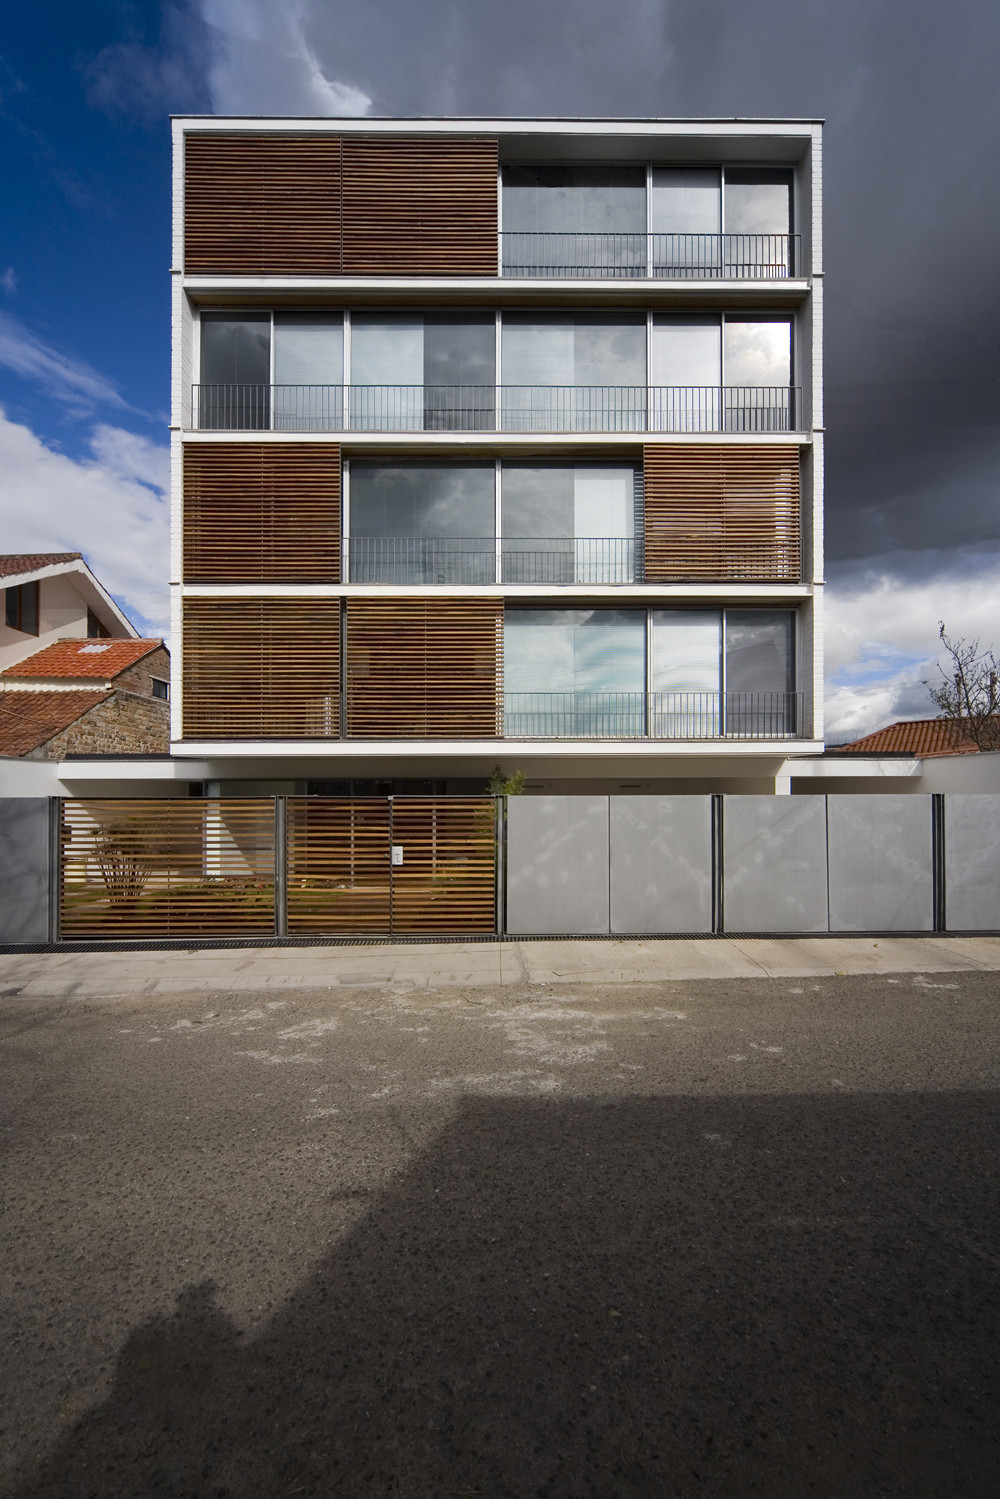 Gallery of jacobo building duran hermida arquitectos for Small modern apartment building design